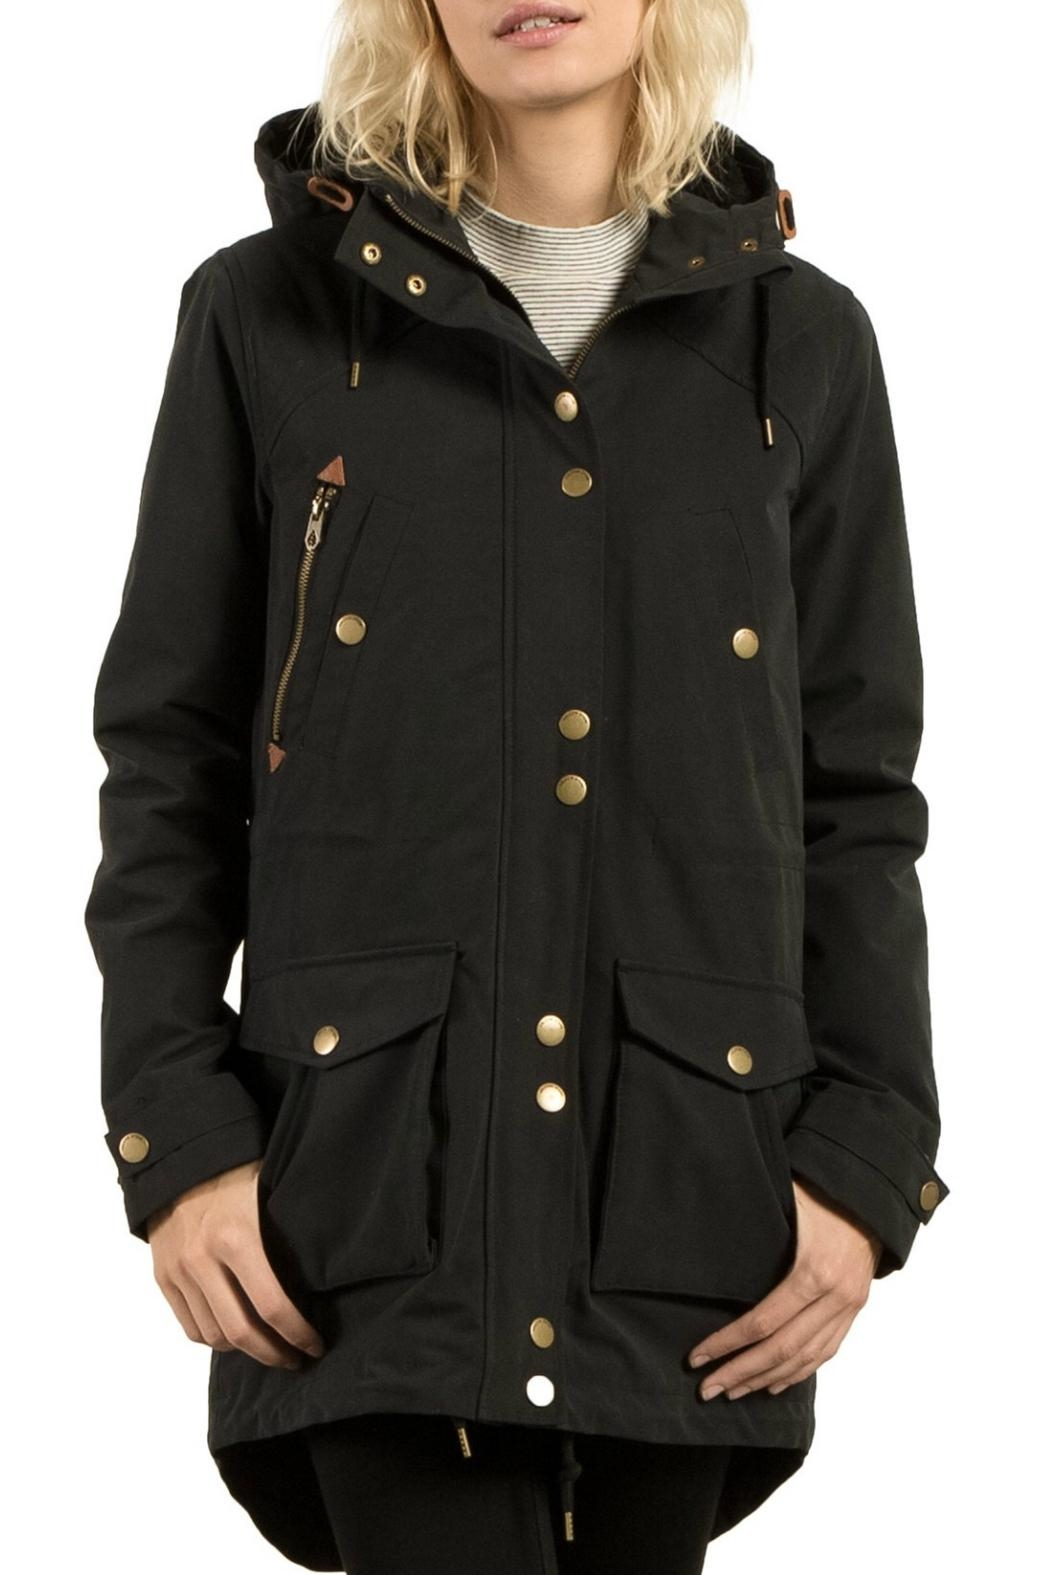 Cropped black parka jacket